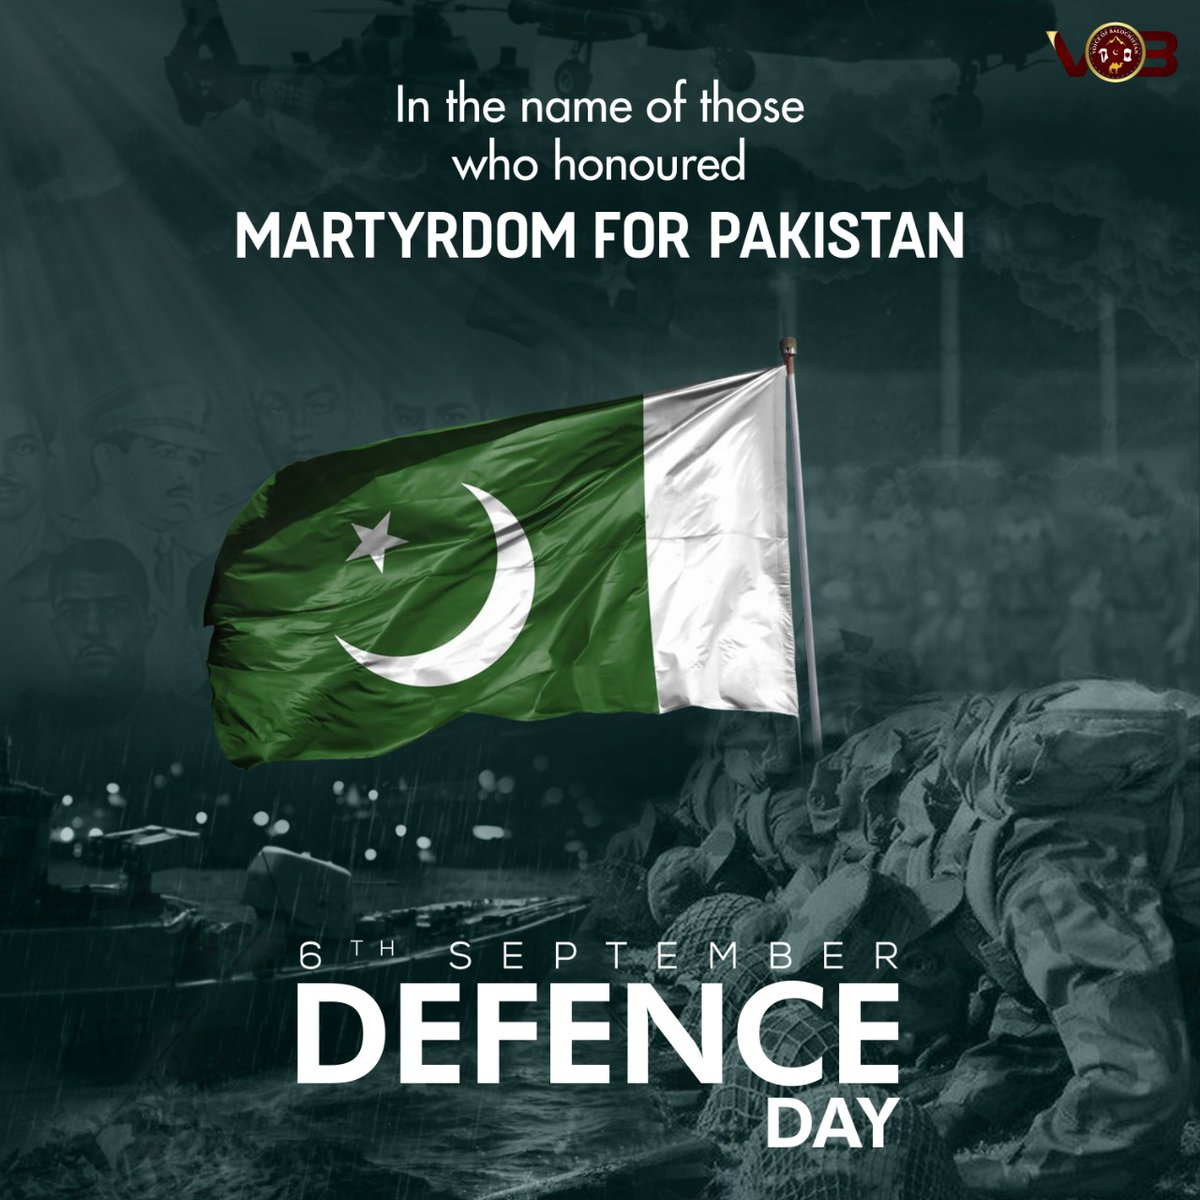 Salute to all Pakistan Armed Forces who defended the homeland with their great sacrifice !! #ShaanePakistan #DefenceDay #PakistanZindabaad https://t.co/DEFk5ZHZ8d